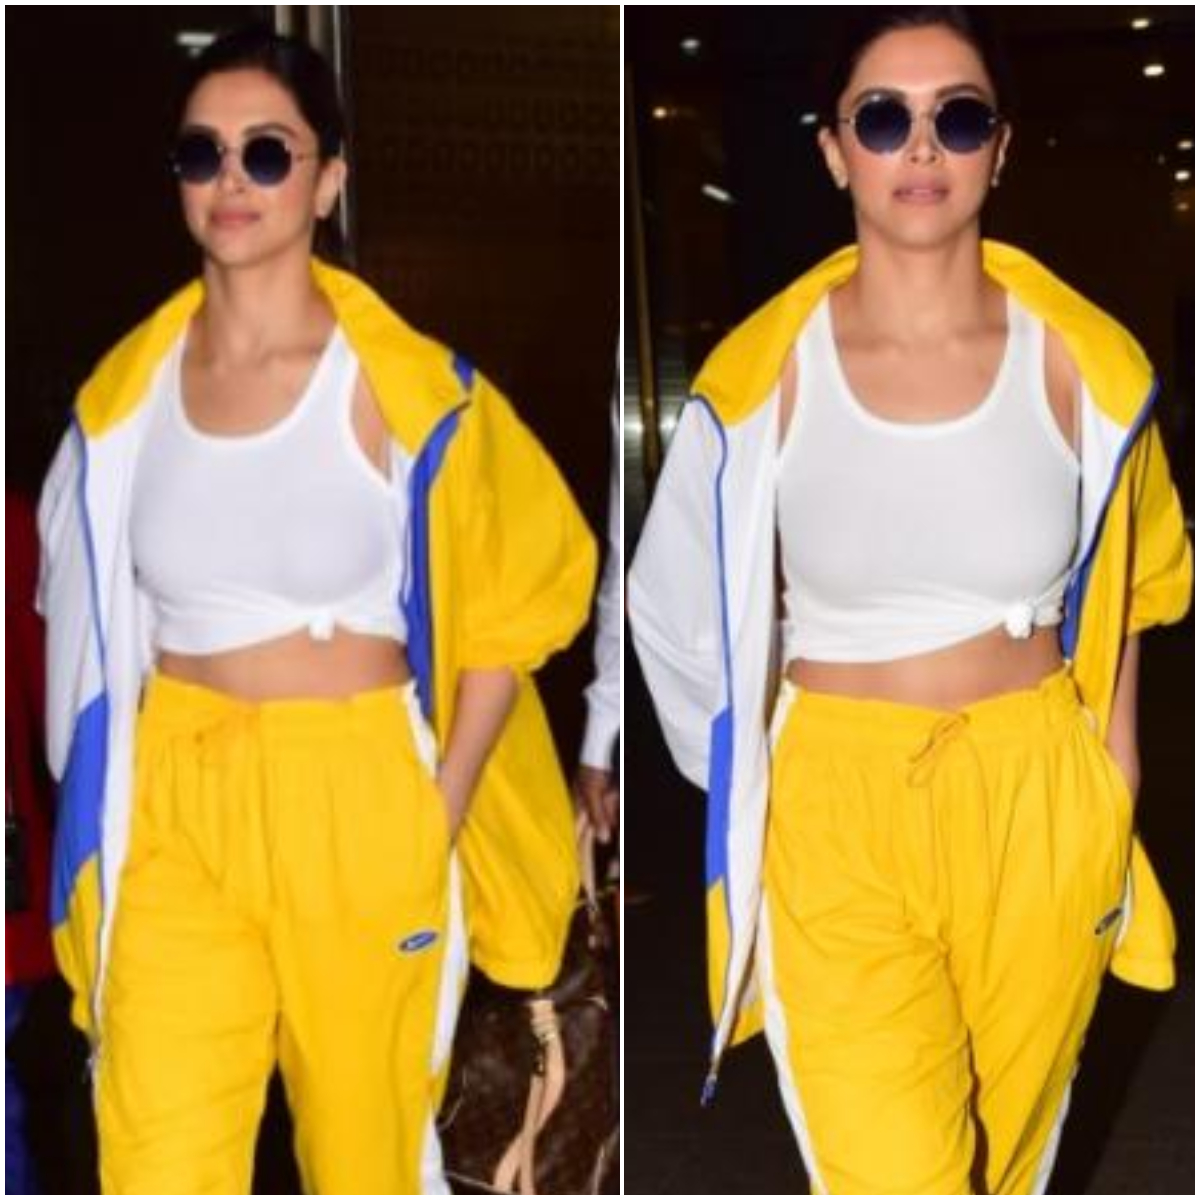 Deepika Padukone proves yet again she is the queen of airport looks in a tracksuit with a 'knotty' twist